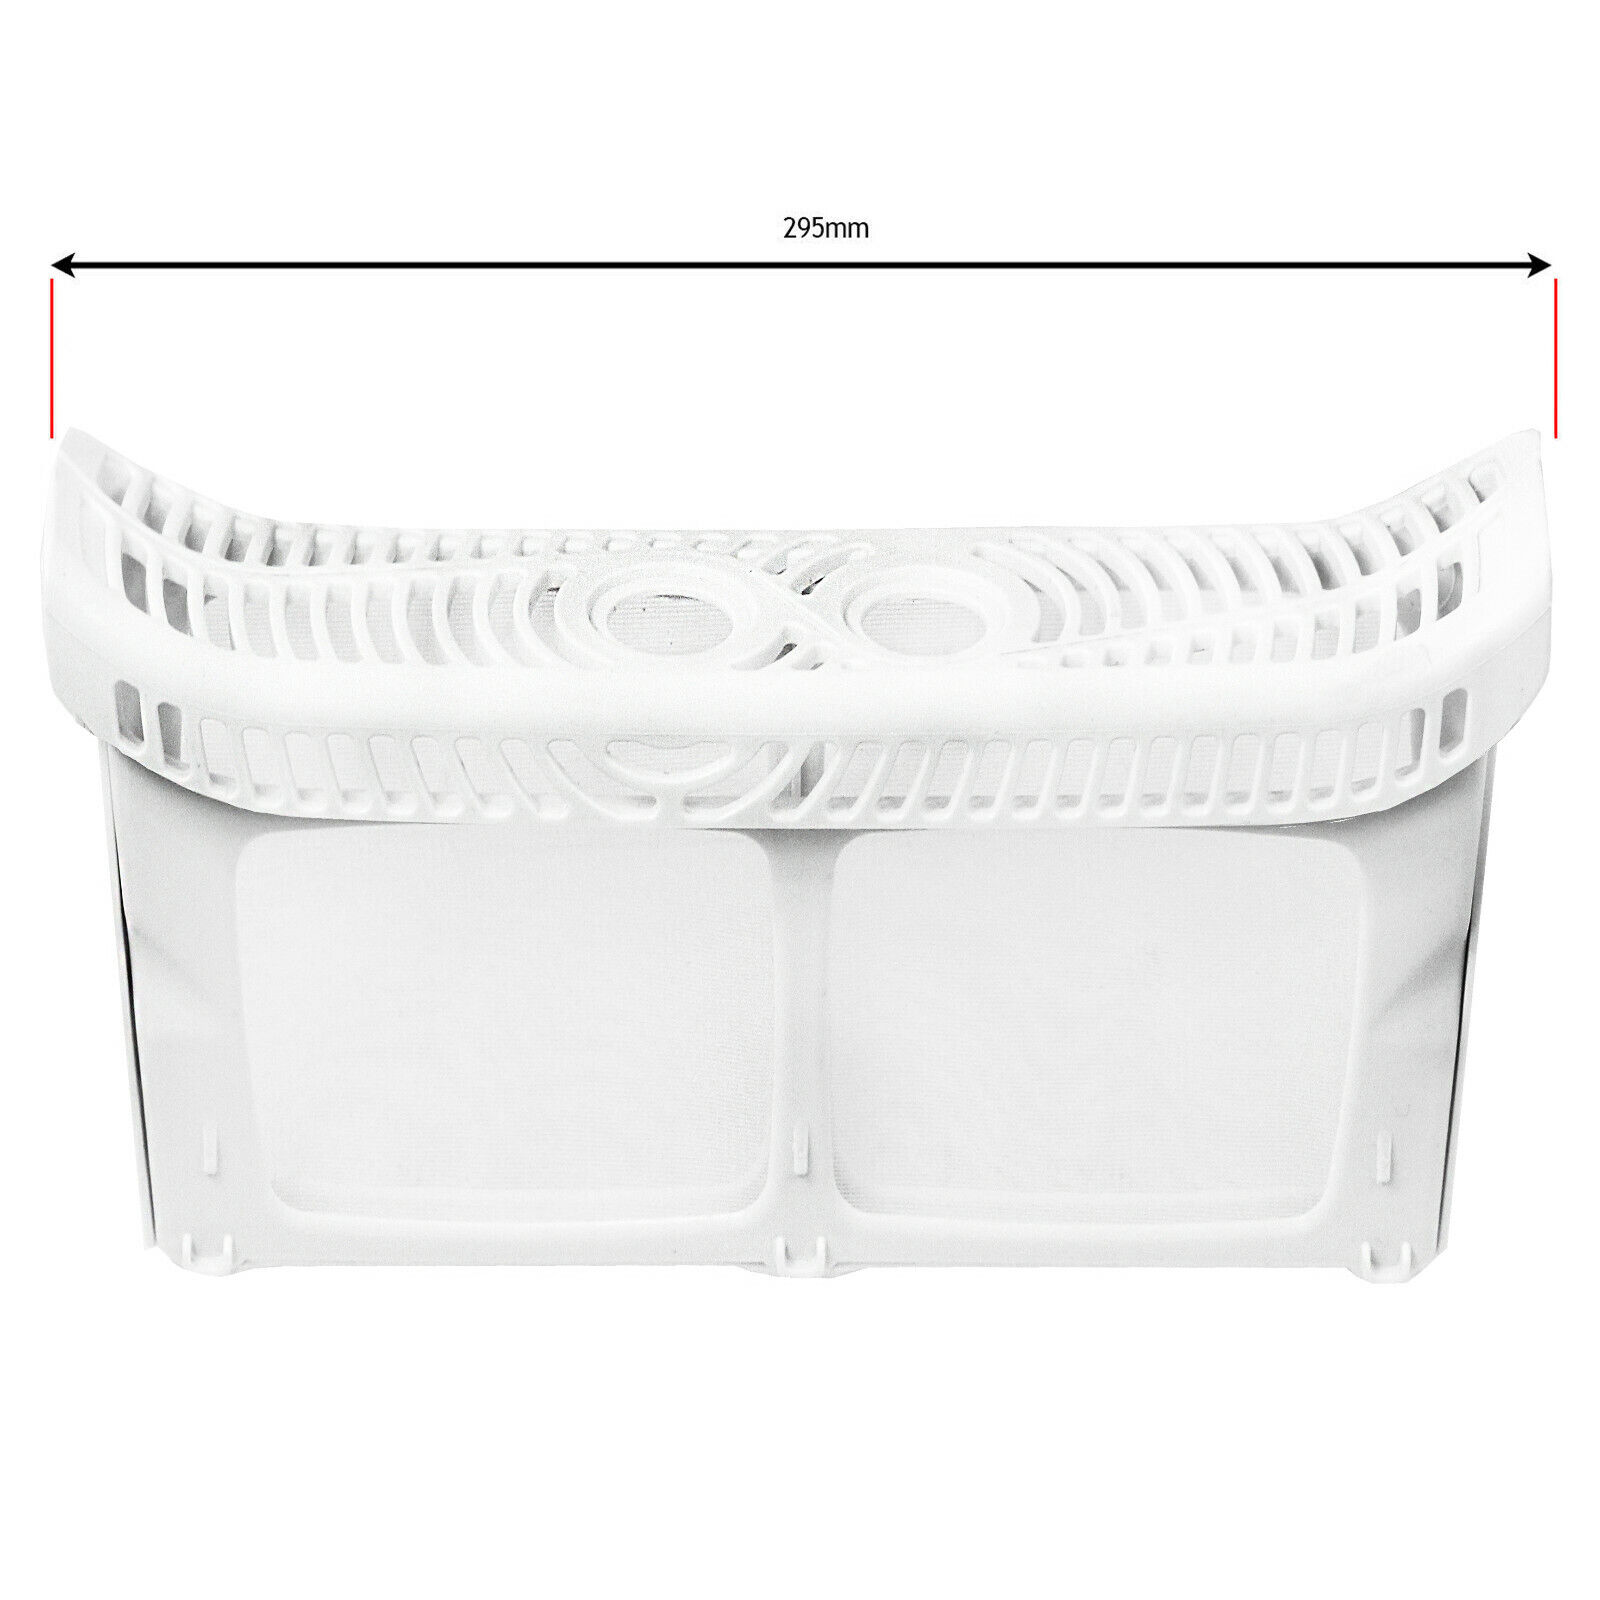 Tumble Dryer Filter Lint Cage Catcher Screen for HOTPOINT ARISTON INDESIT M2